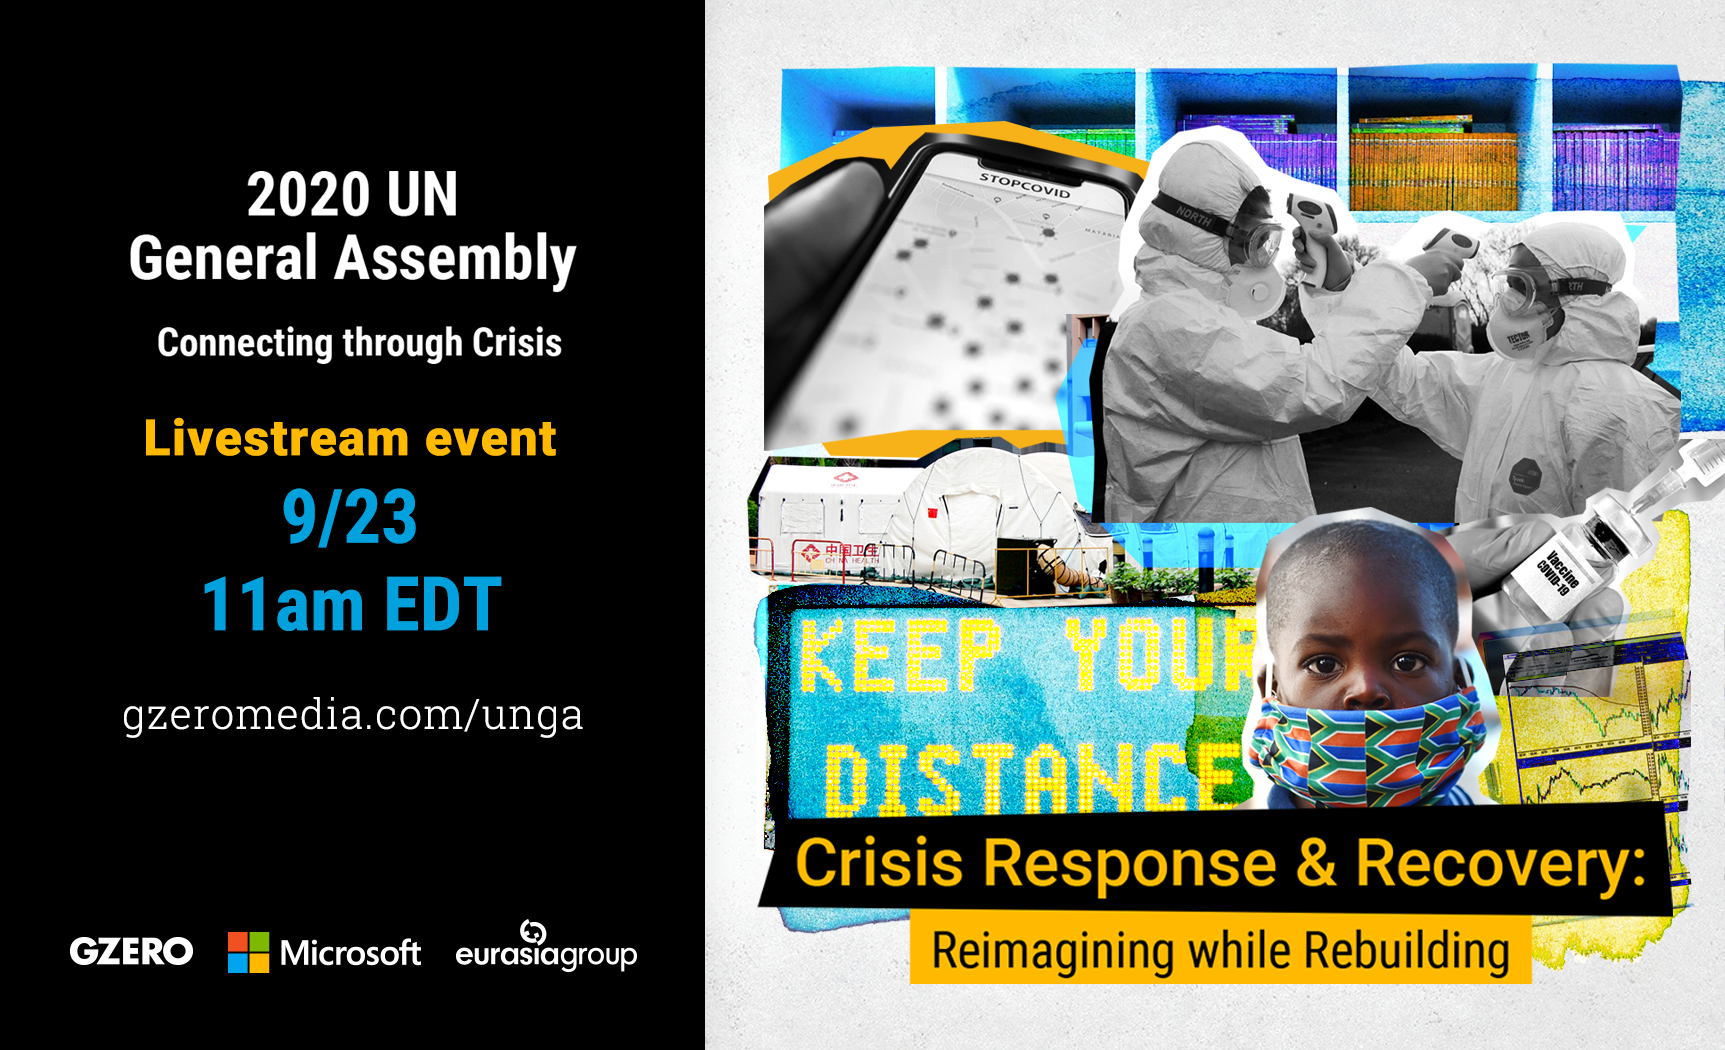 2020 UN General Assembly: Connecting Through Crisis - Livestream event 9-23 11 am EDT. Crisis Response & Recovery: Reimagining while Rebuilding